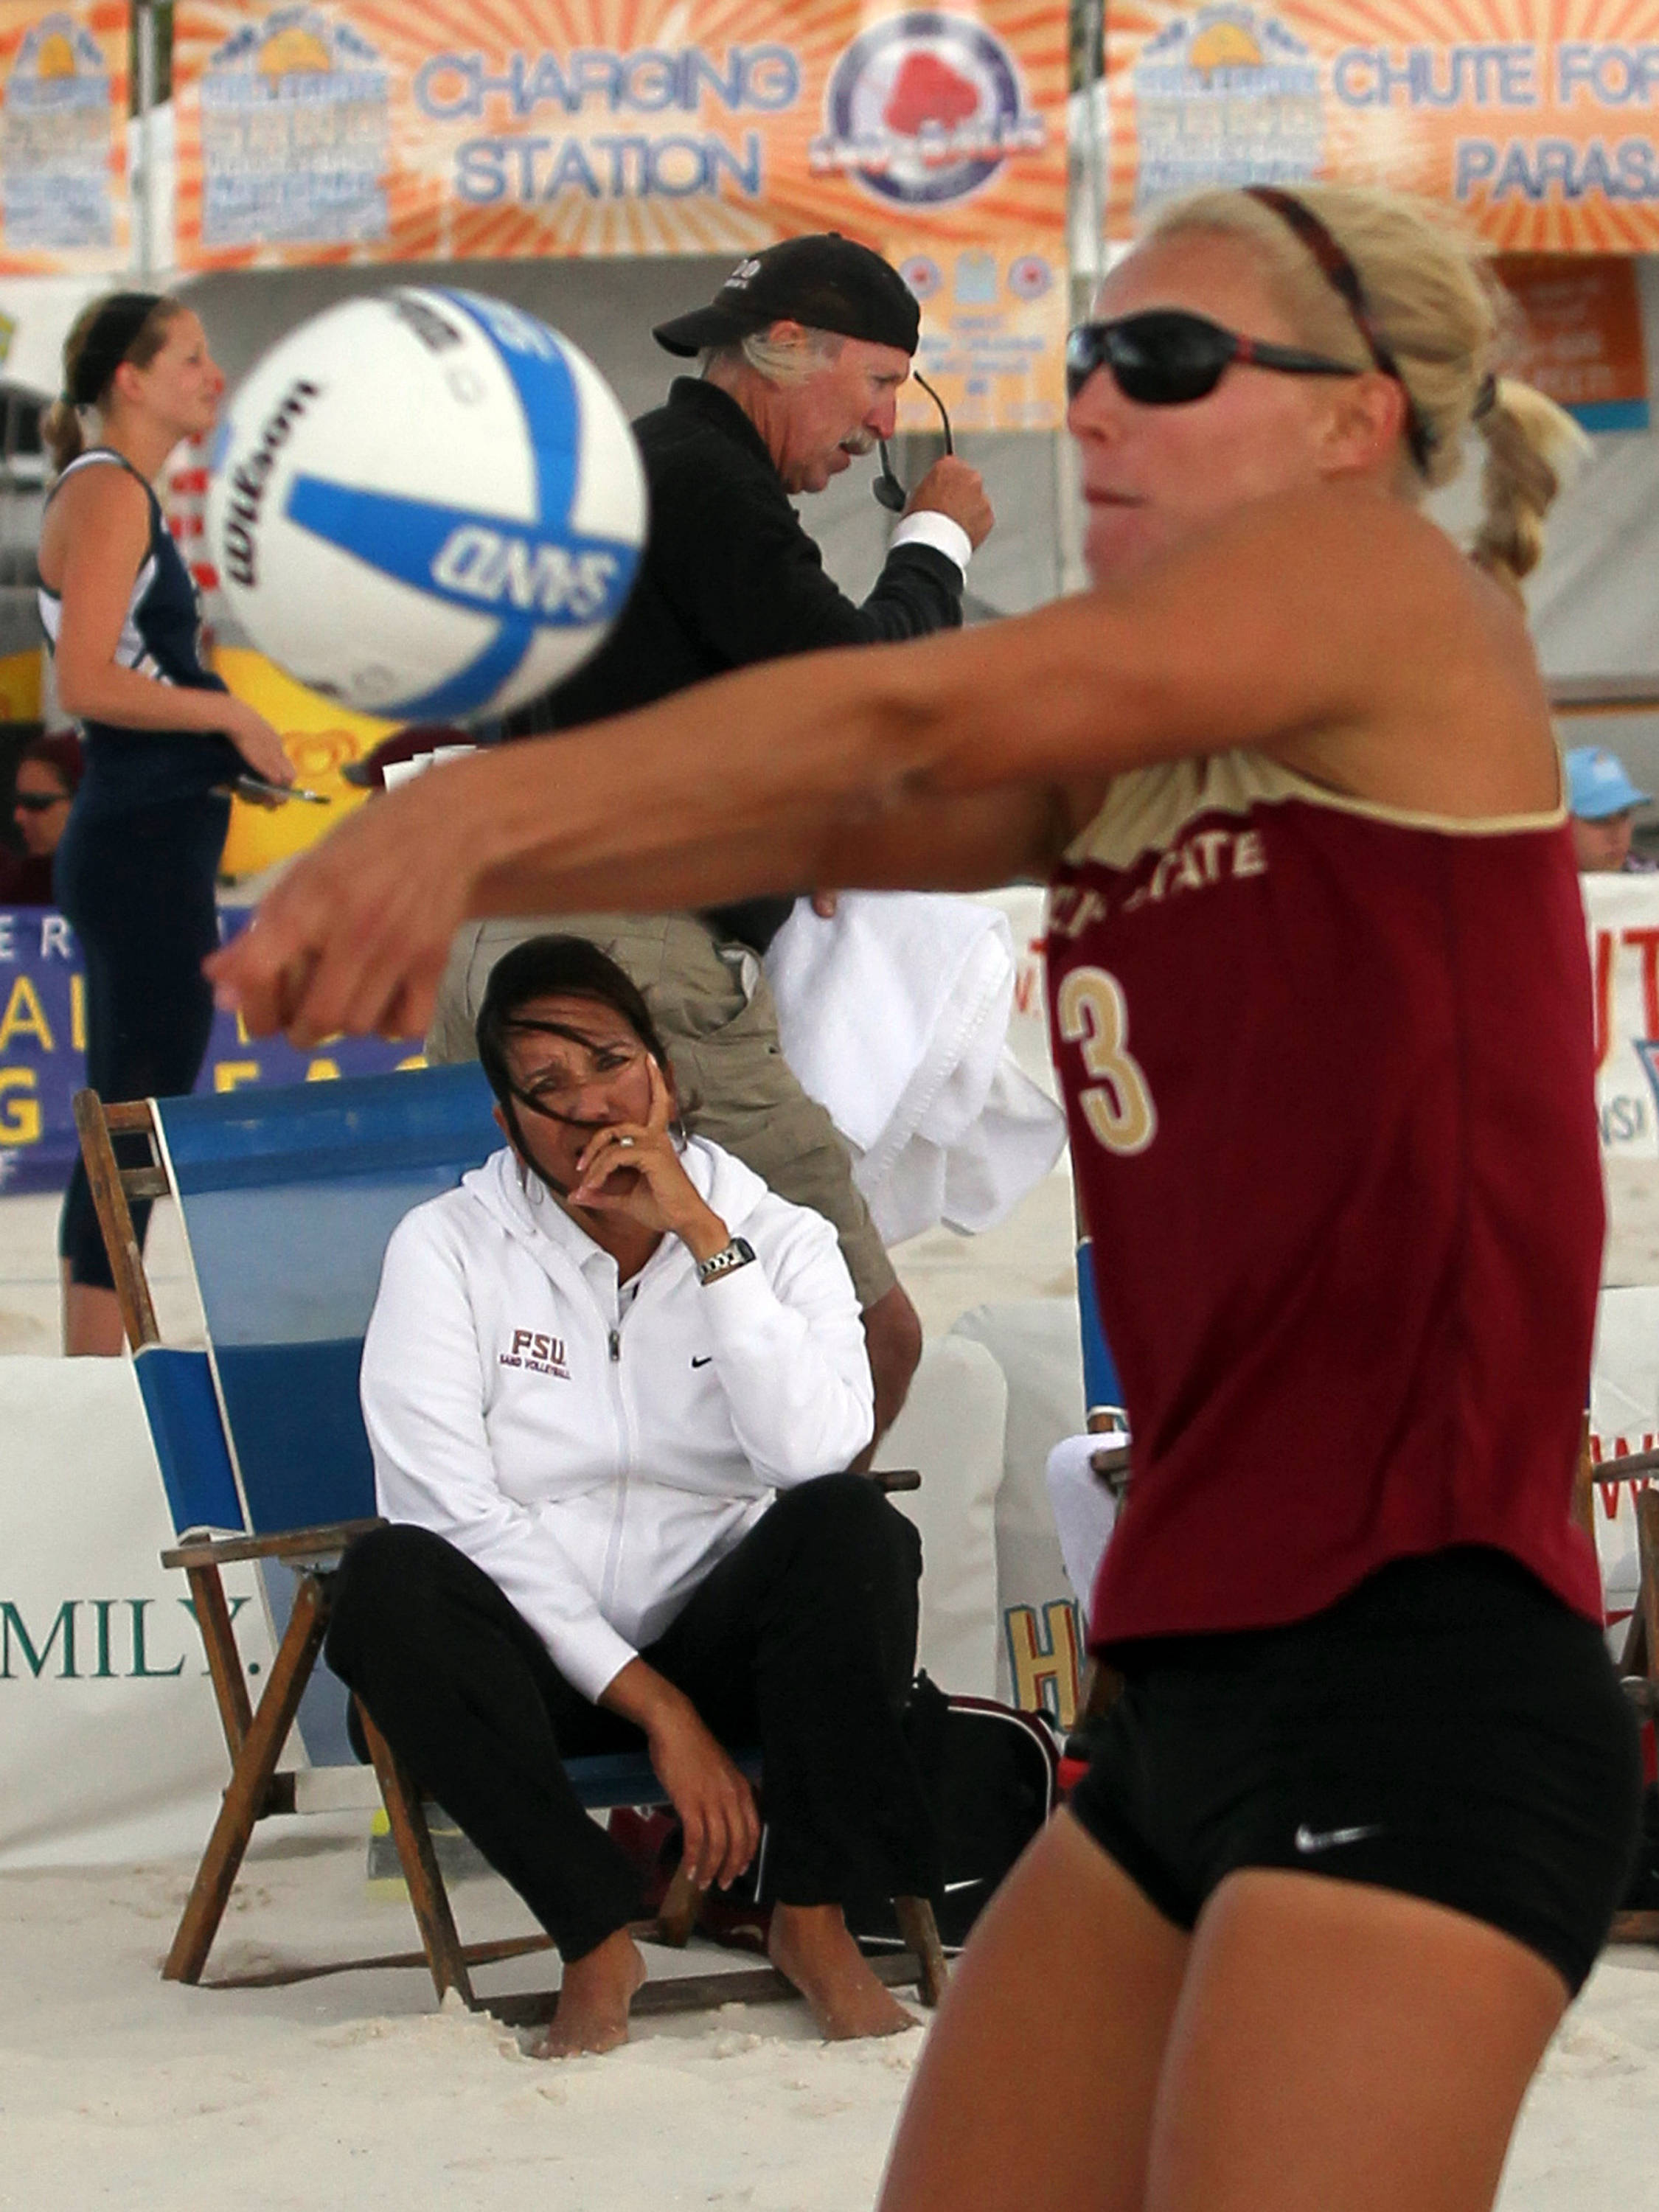 Head Coach Danalee Corso watching Julie Brown, AVCA Collegiate Sand Volleyball National  Championships - Pairs,  Gulf Shores, Alabama, 05/05/13 . (Photo by Steve Musco)